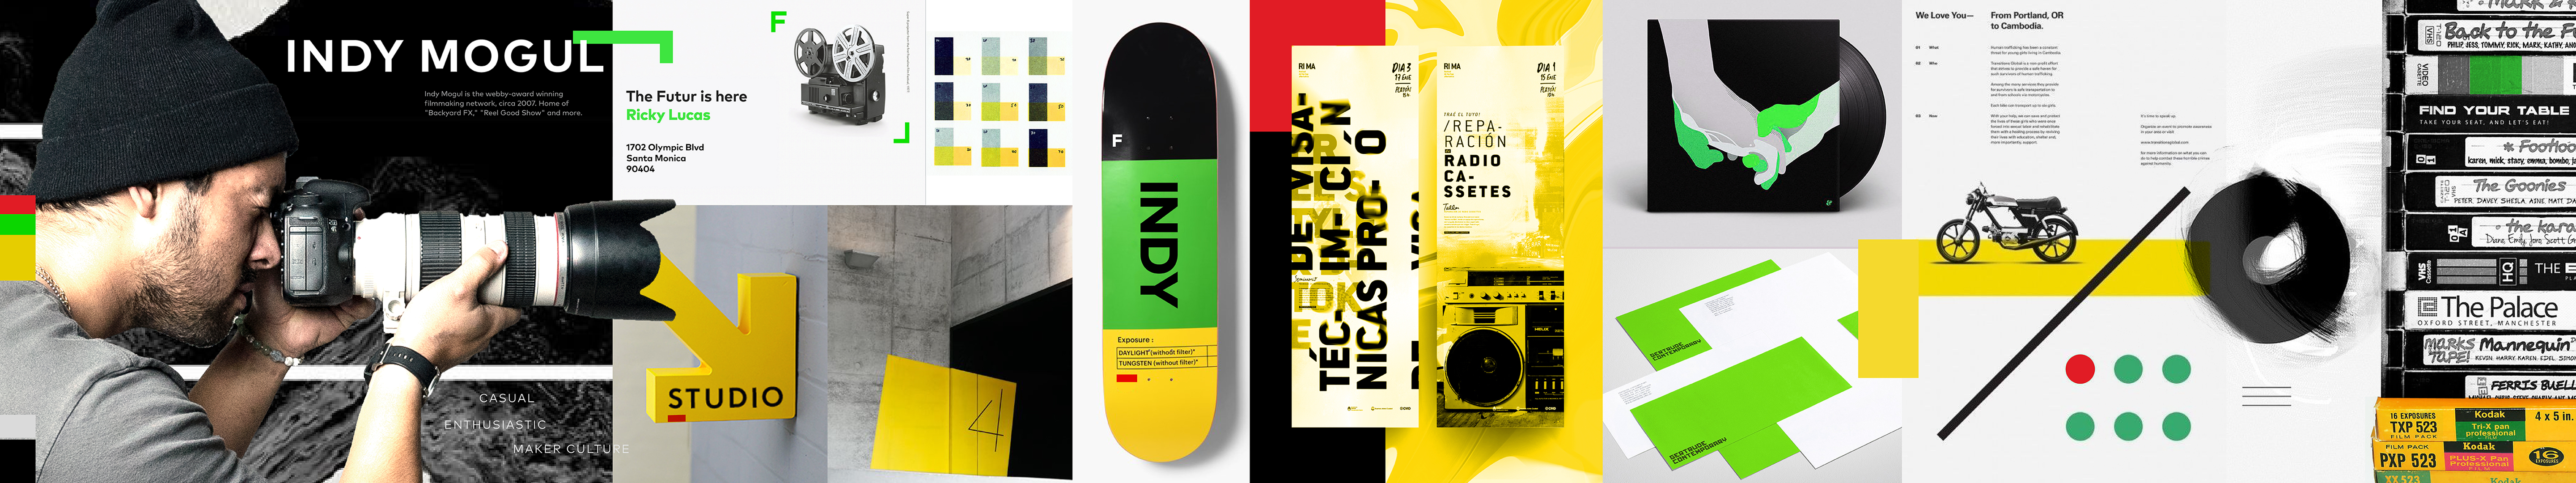 Example brand identity stylescape for Indy Mogul.